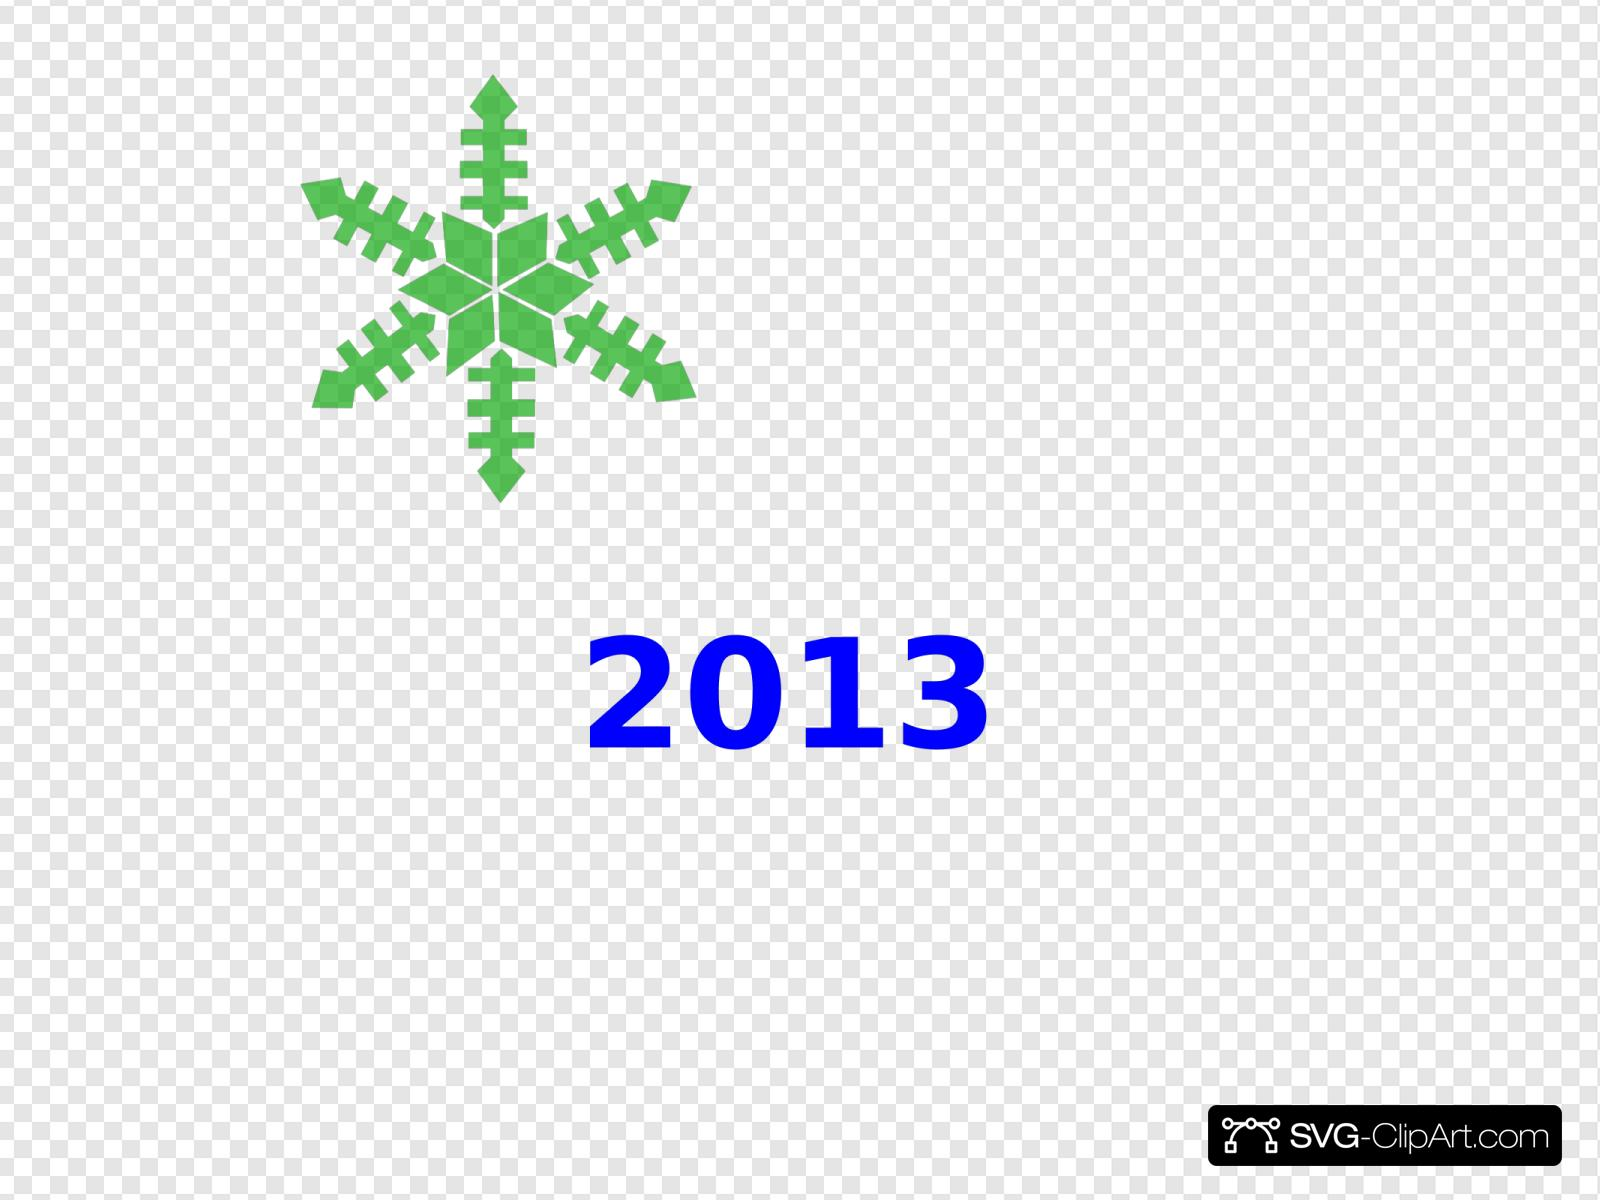 happy new year 2013 svg vector happy new year 2013 clip art svg clipart svg clipart